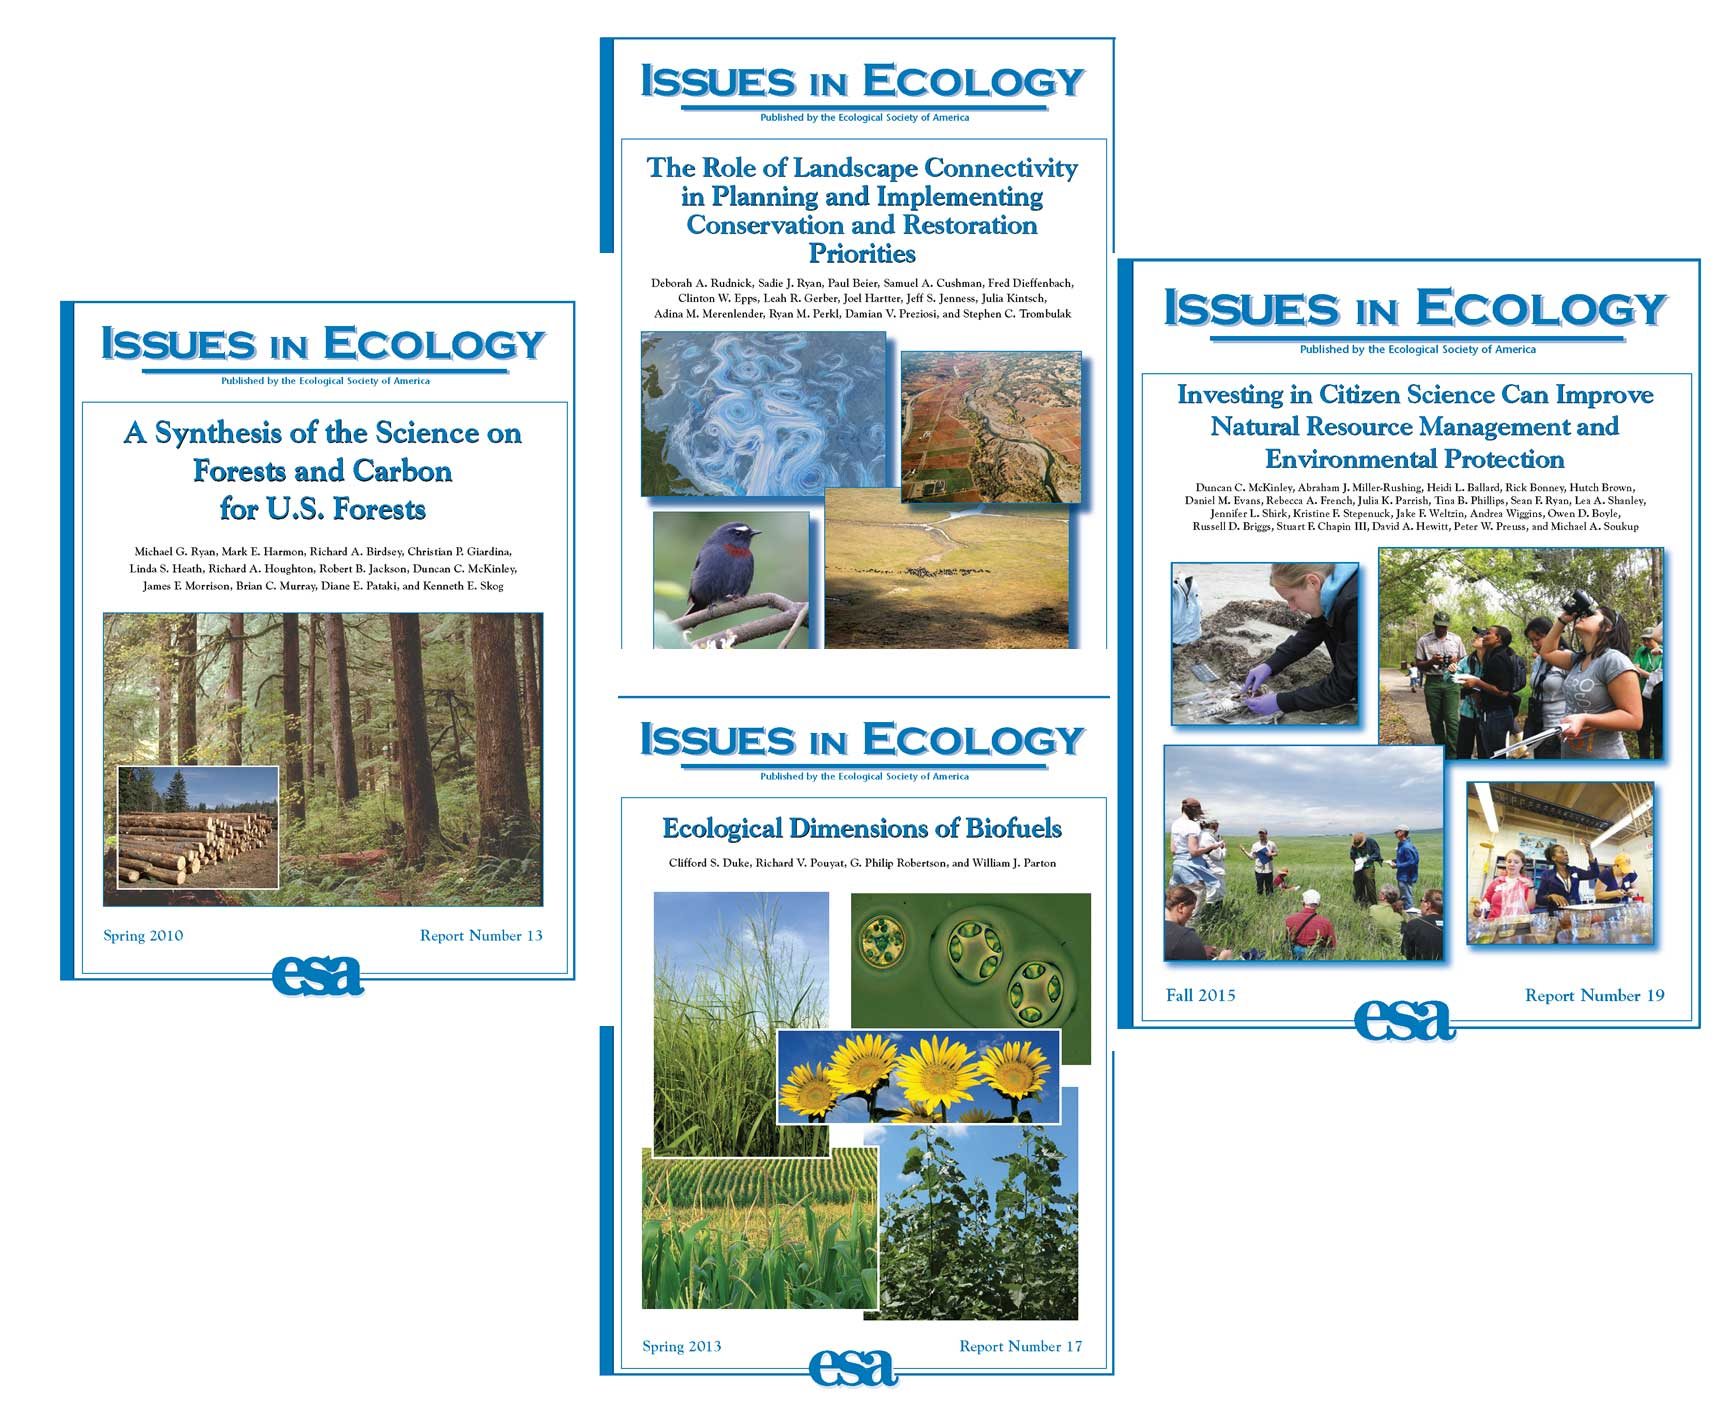 Issues In Ecology cover images